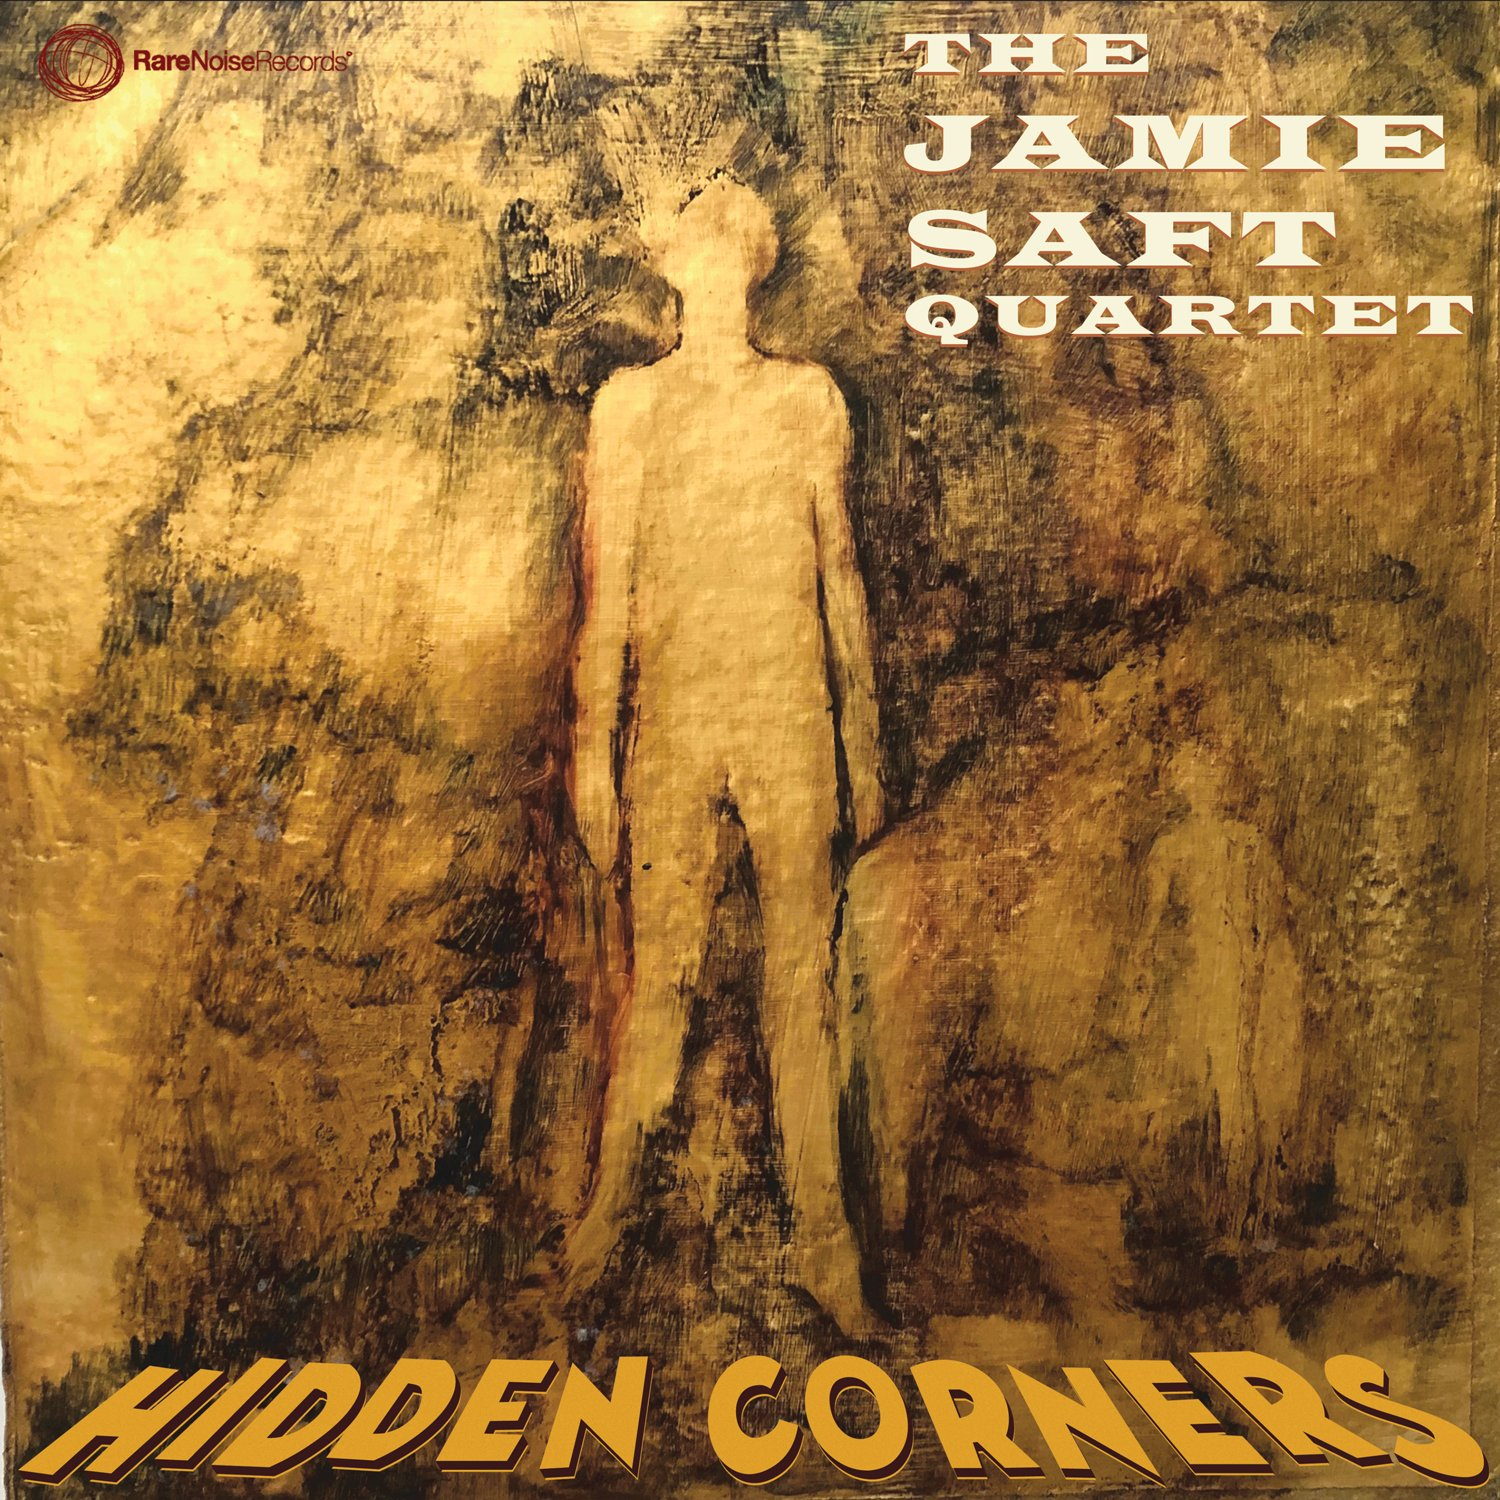 Jamie Saft Quartet Hidden Corners |